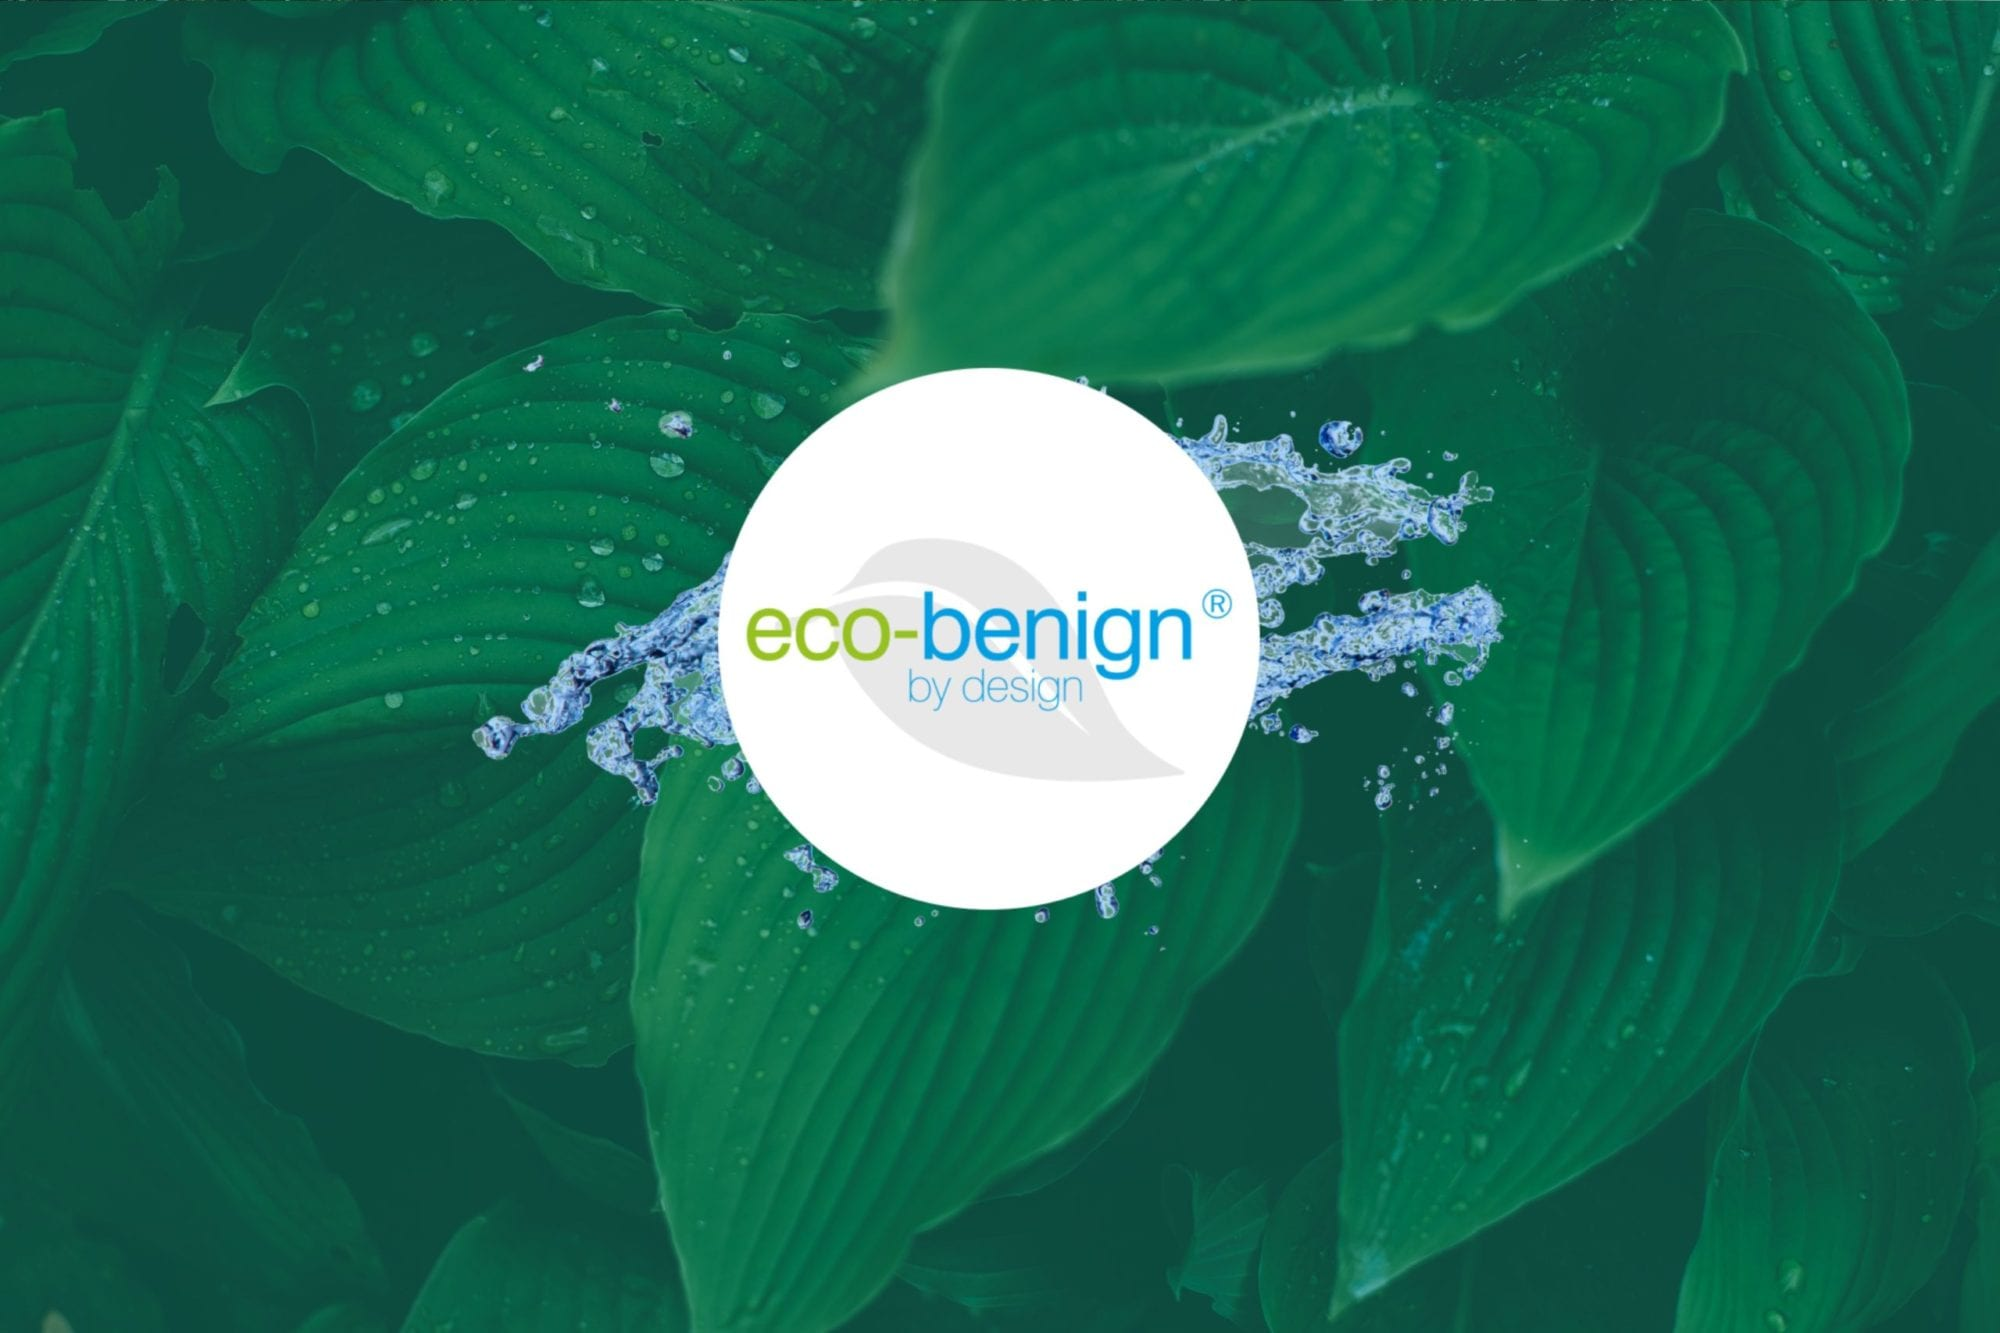 What is eco-benign®?